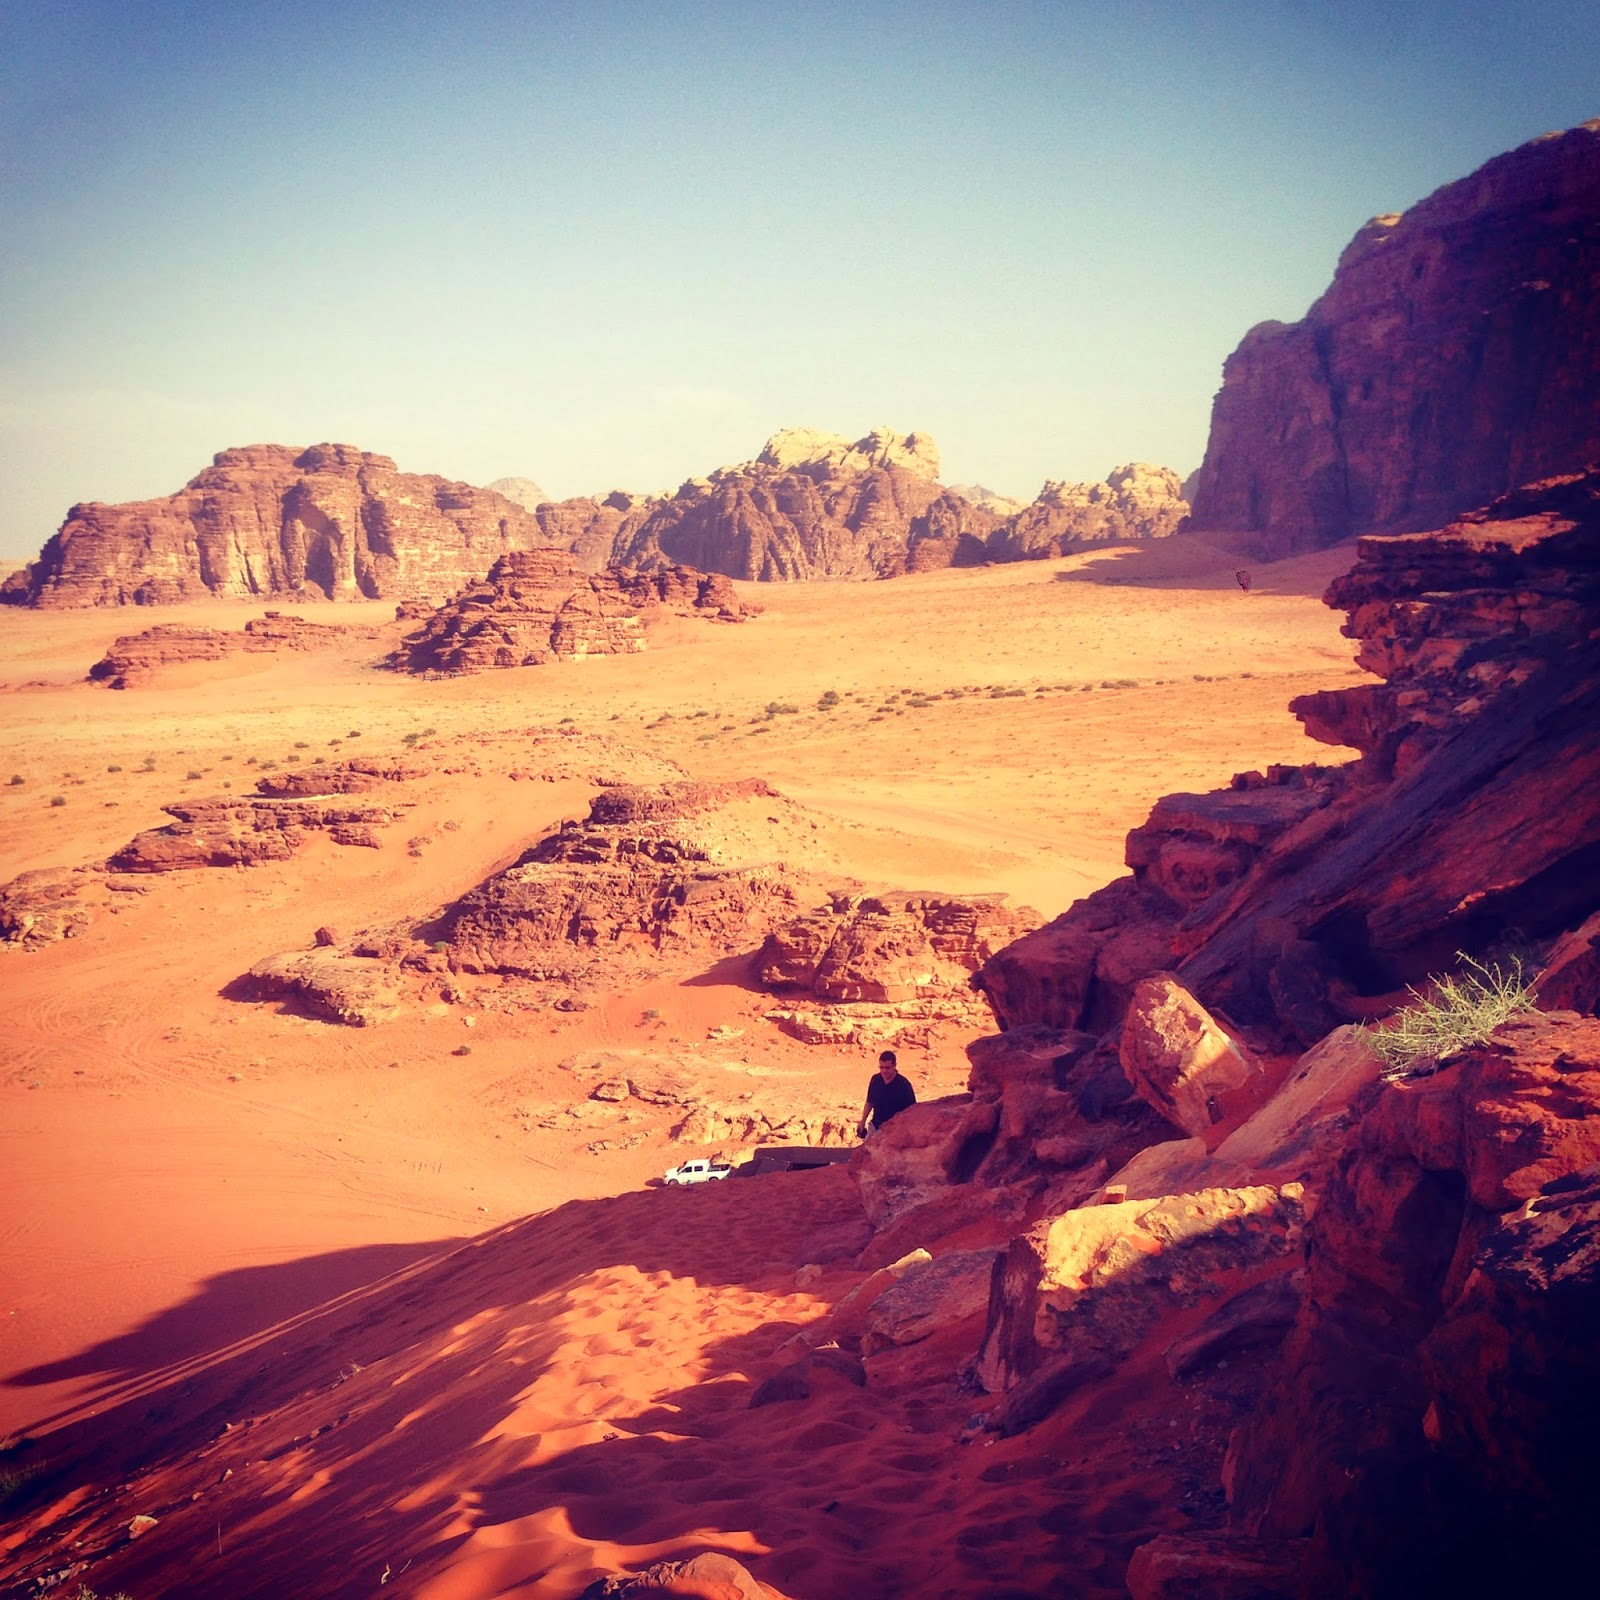 Travel Post: We hung out in the desert of Wadi Rum, Jordan